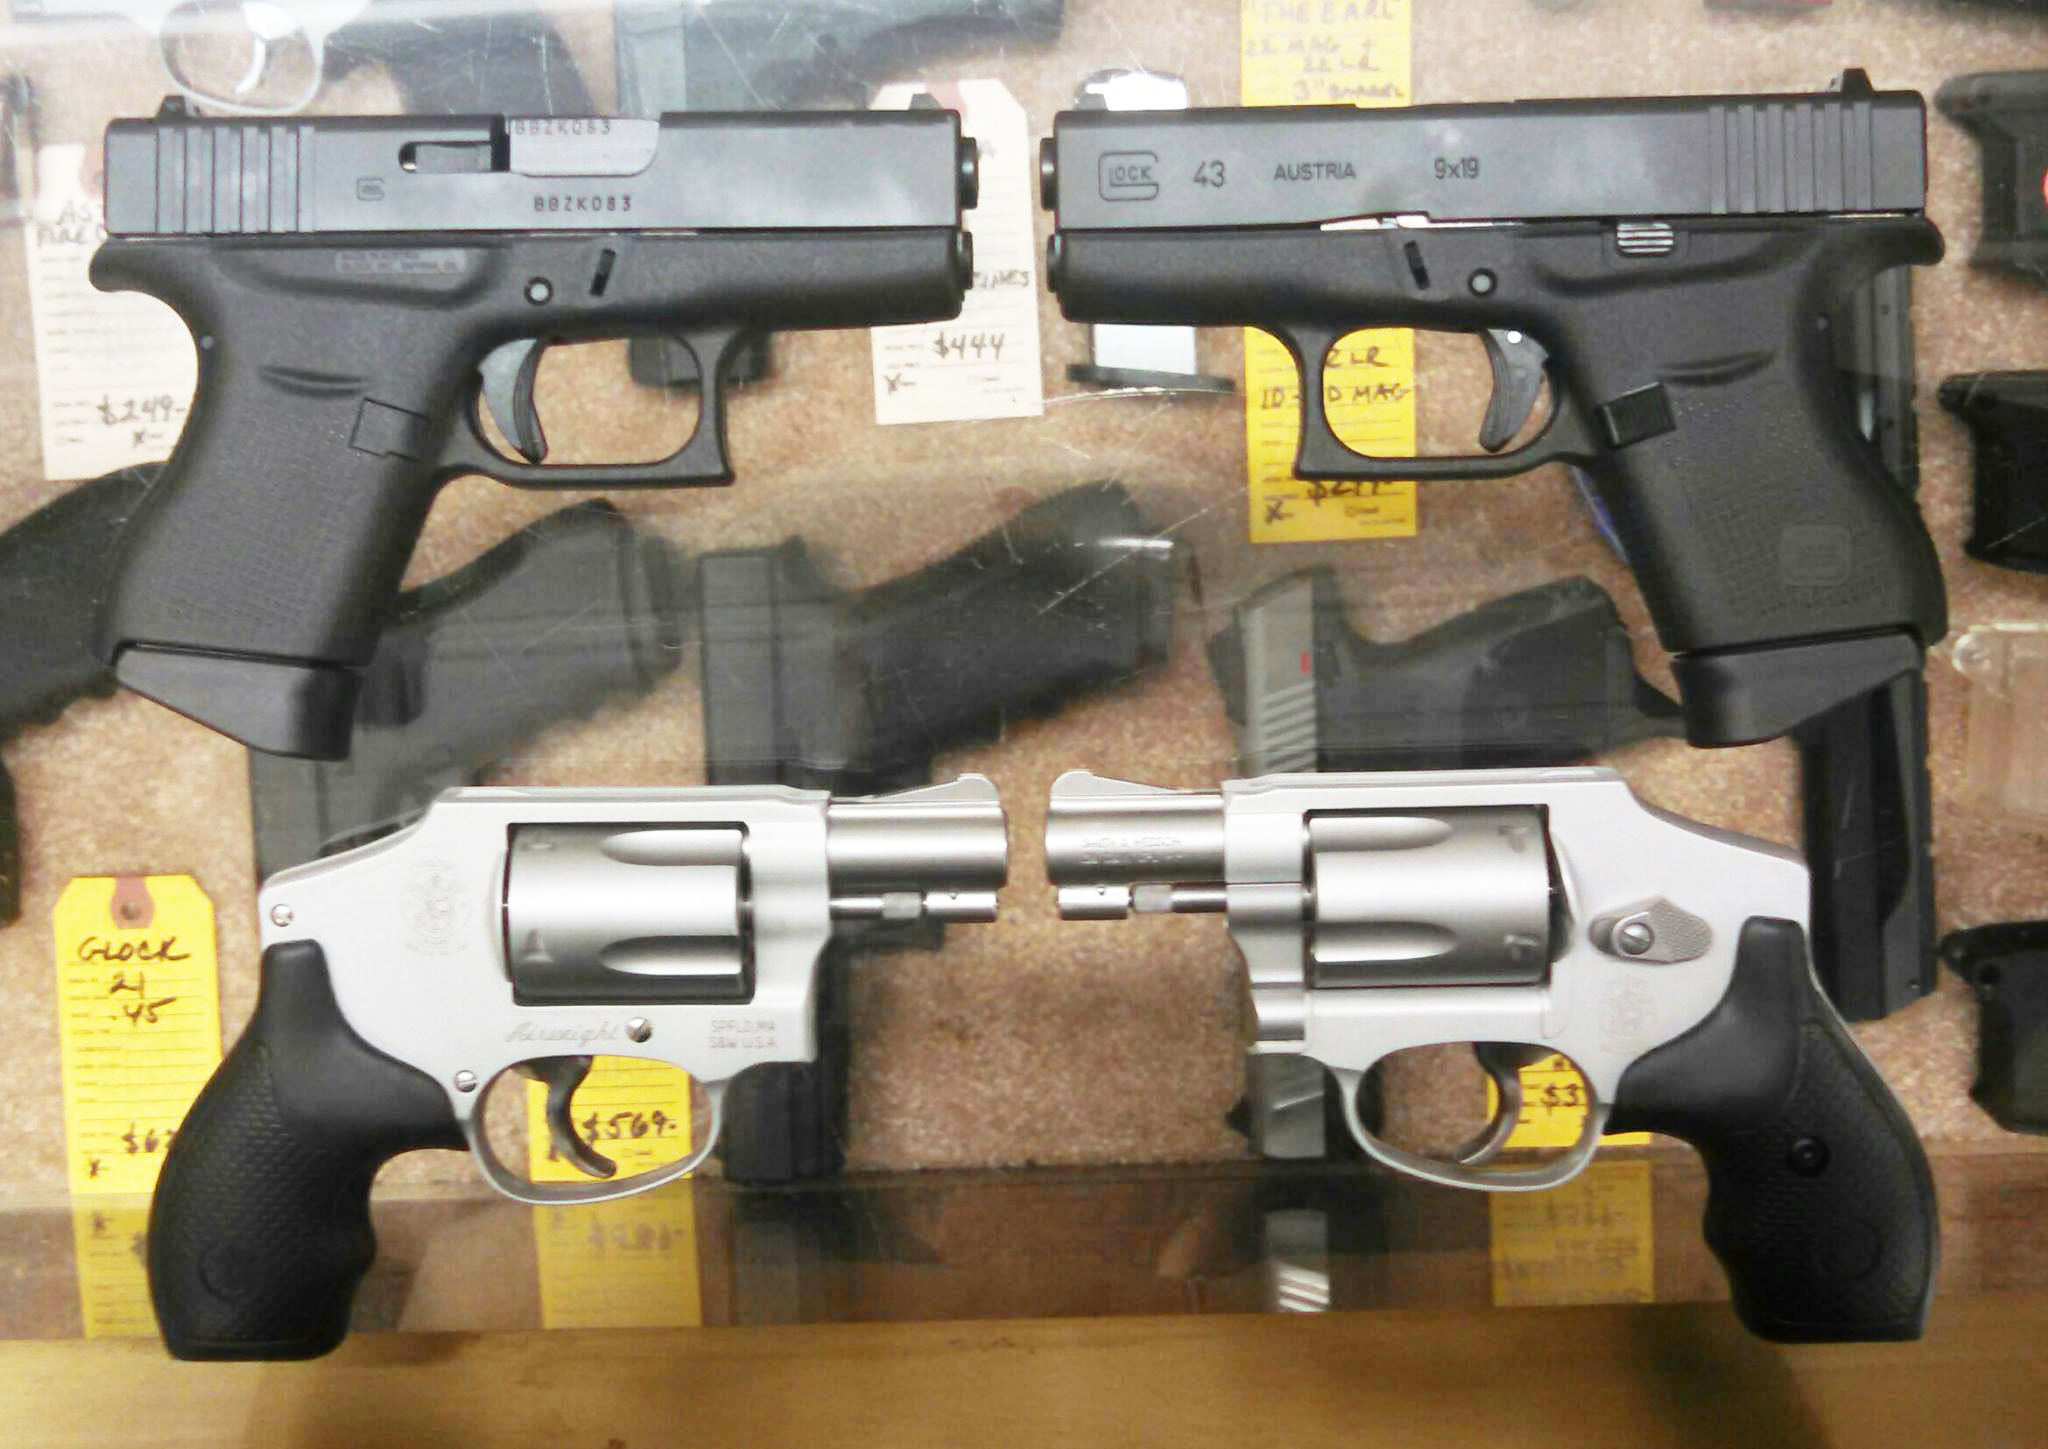 IN STOCK- GLOCK 43 9MM & SMITH & WESSON 642 .38 SPL. The Glock G43 is our new single stack, 9mm pistol. The G43 is the most highly desired and anticipated release in GLOCKs history. The G43 is the answer to your everyday concealed carry needs